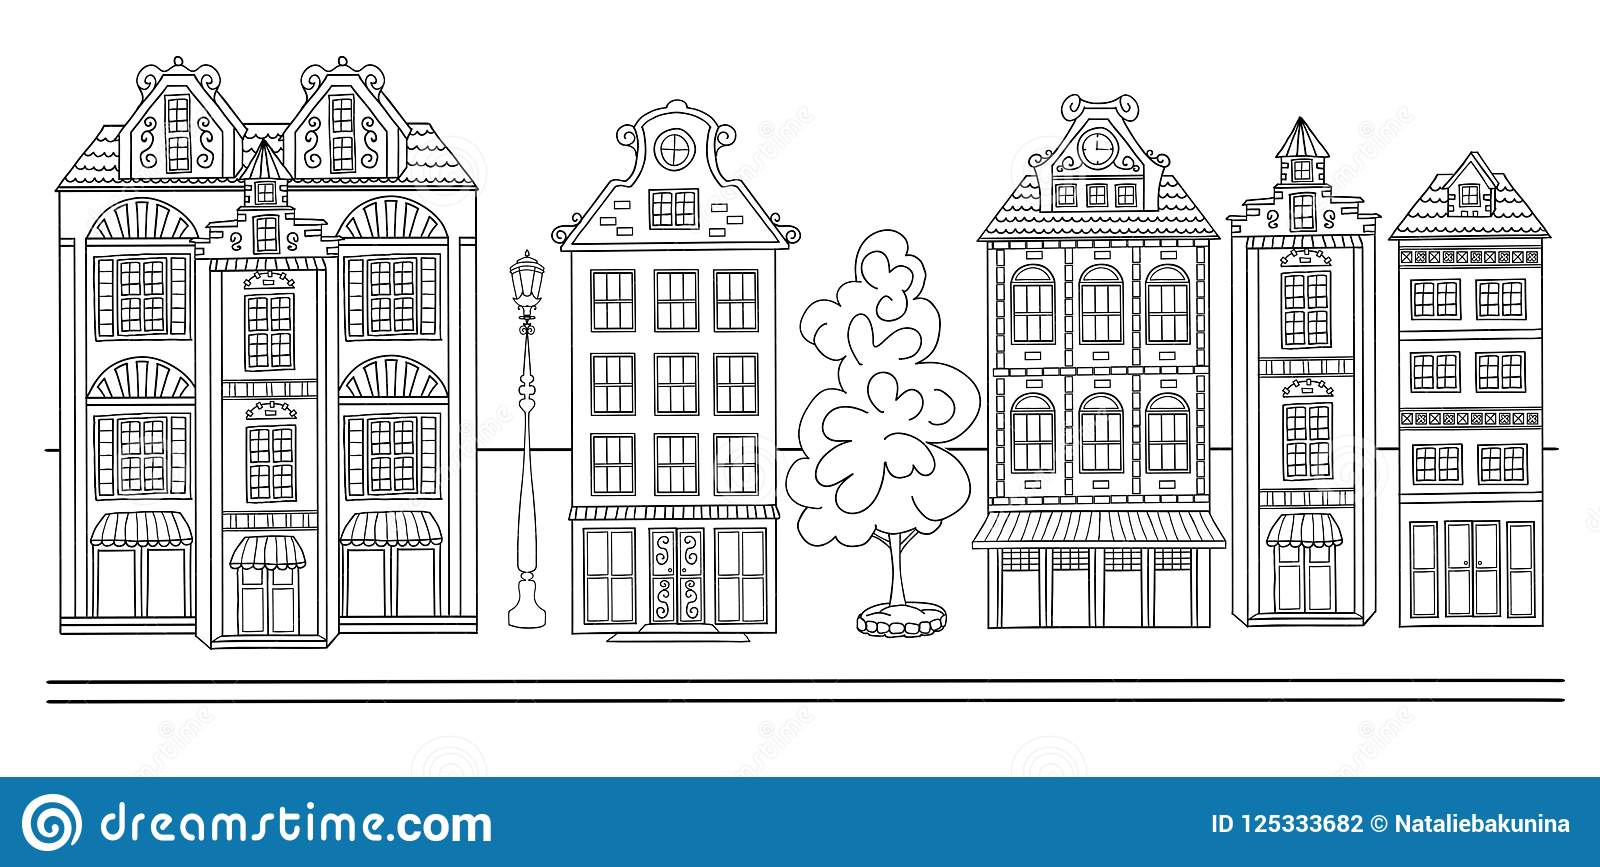 Sketch of town street. stock vector. Illustration of architecture ...